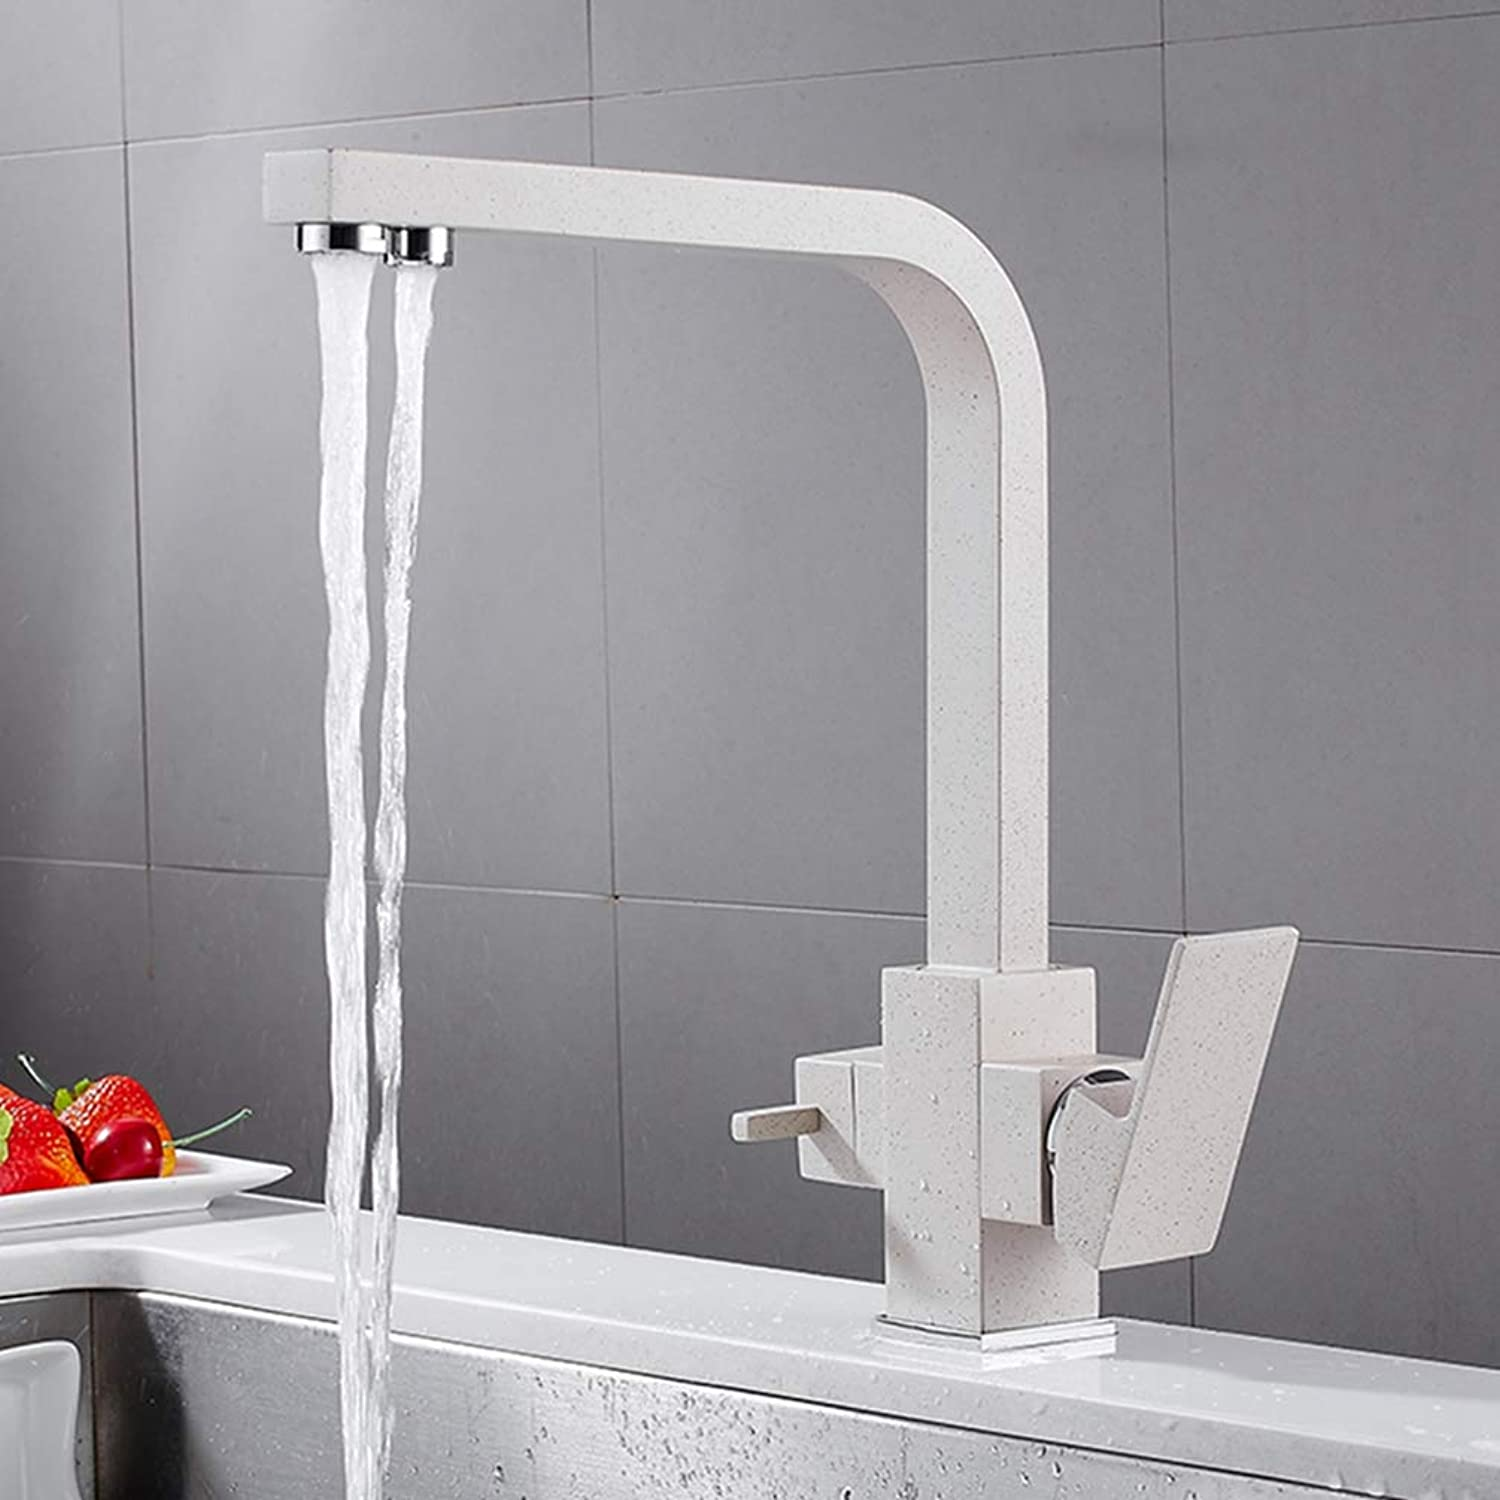 FZHLR Chrome Black Oatmeal Solid Brass Square Multifunctional Kitchen Faucet Pure Water 3 Ways Faucet Drinking Water Mixer Tap Crane,Oatmeal with dot